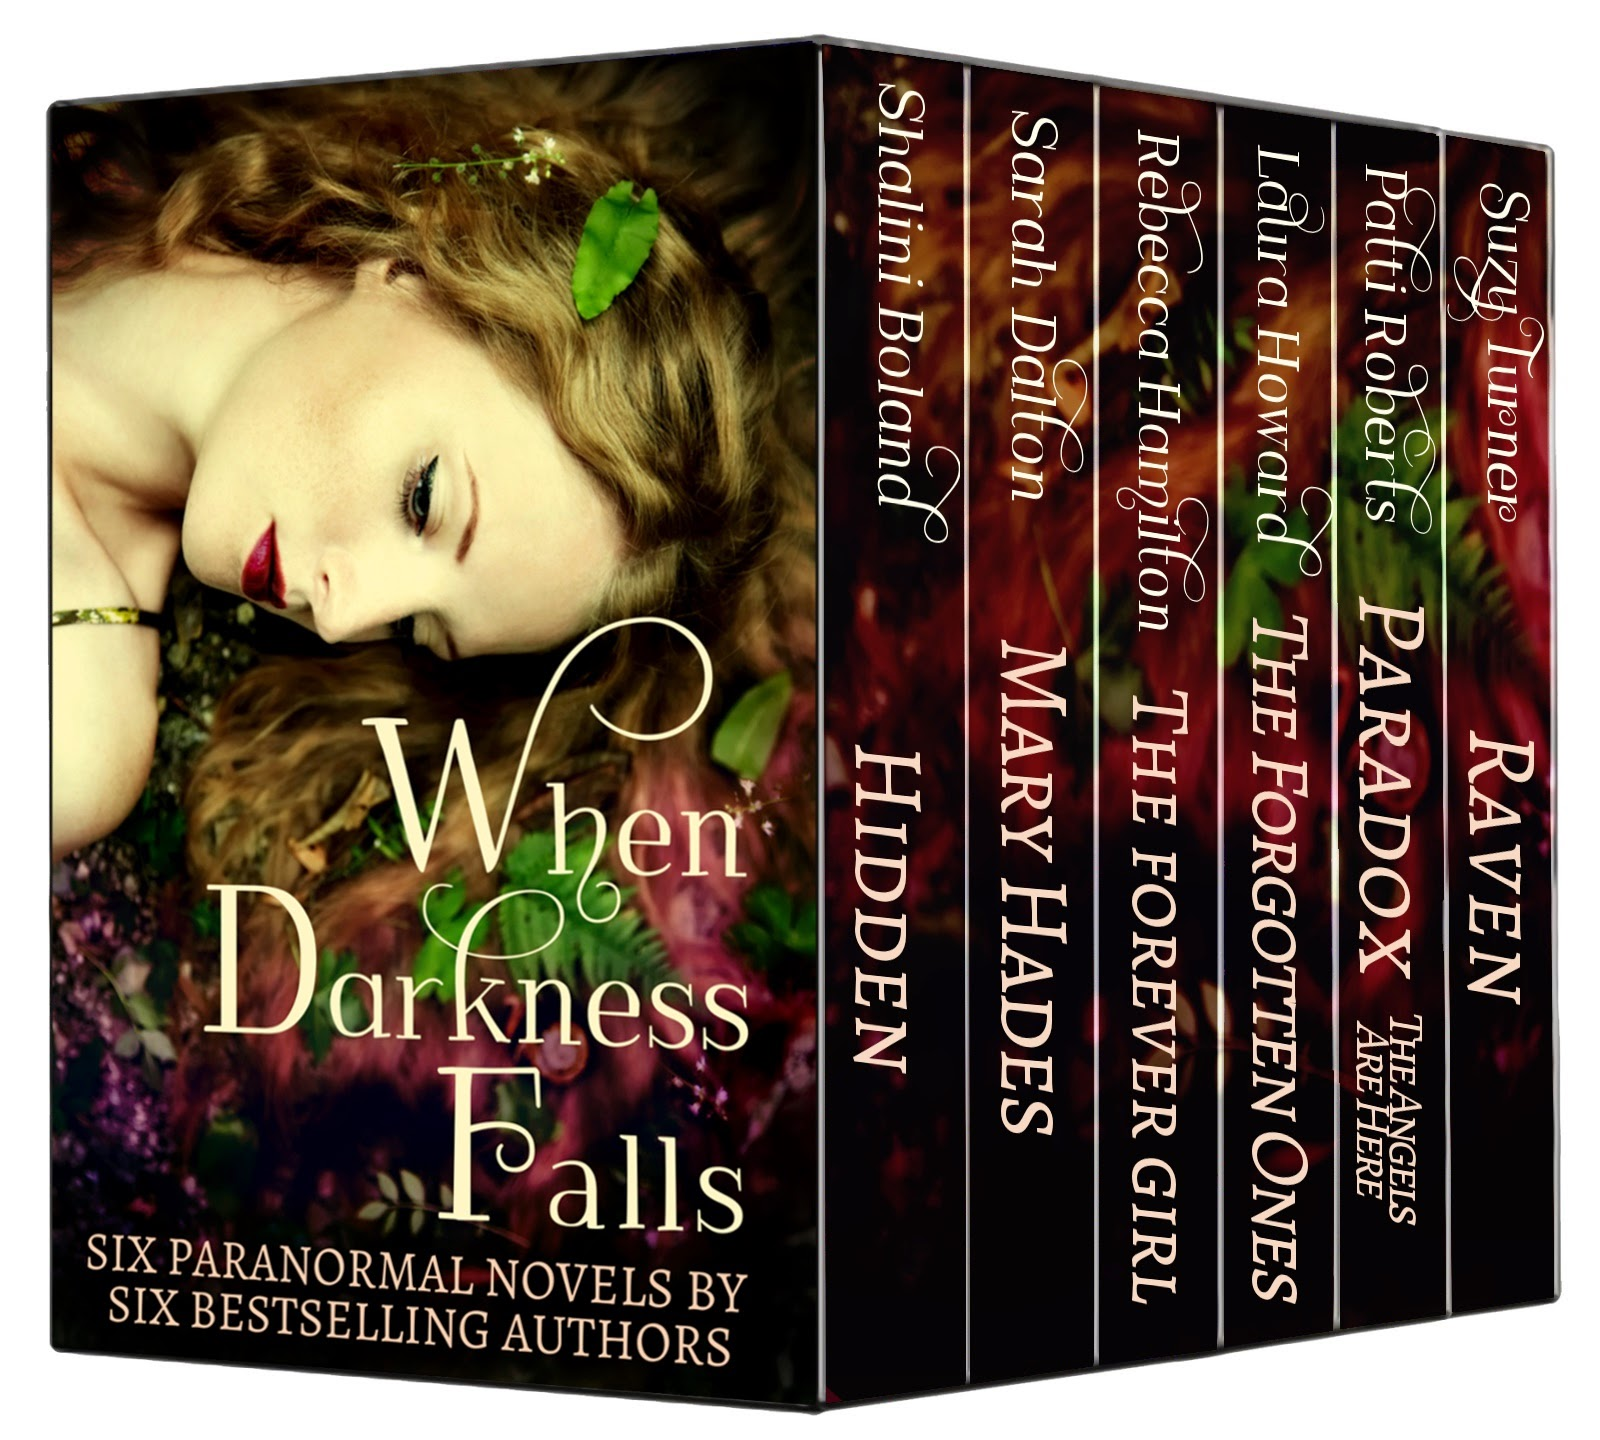 http://www.amazon.com/When-Darkness-Falls-Paranormal-Novels-ebook/dp/B00N7I5SB8